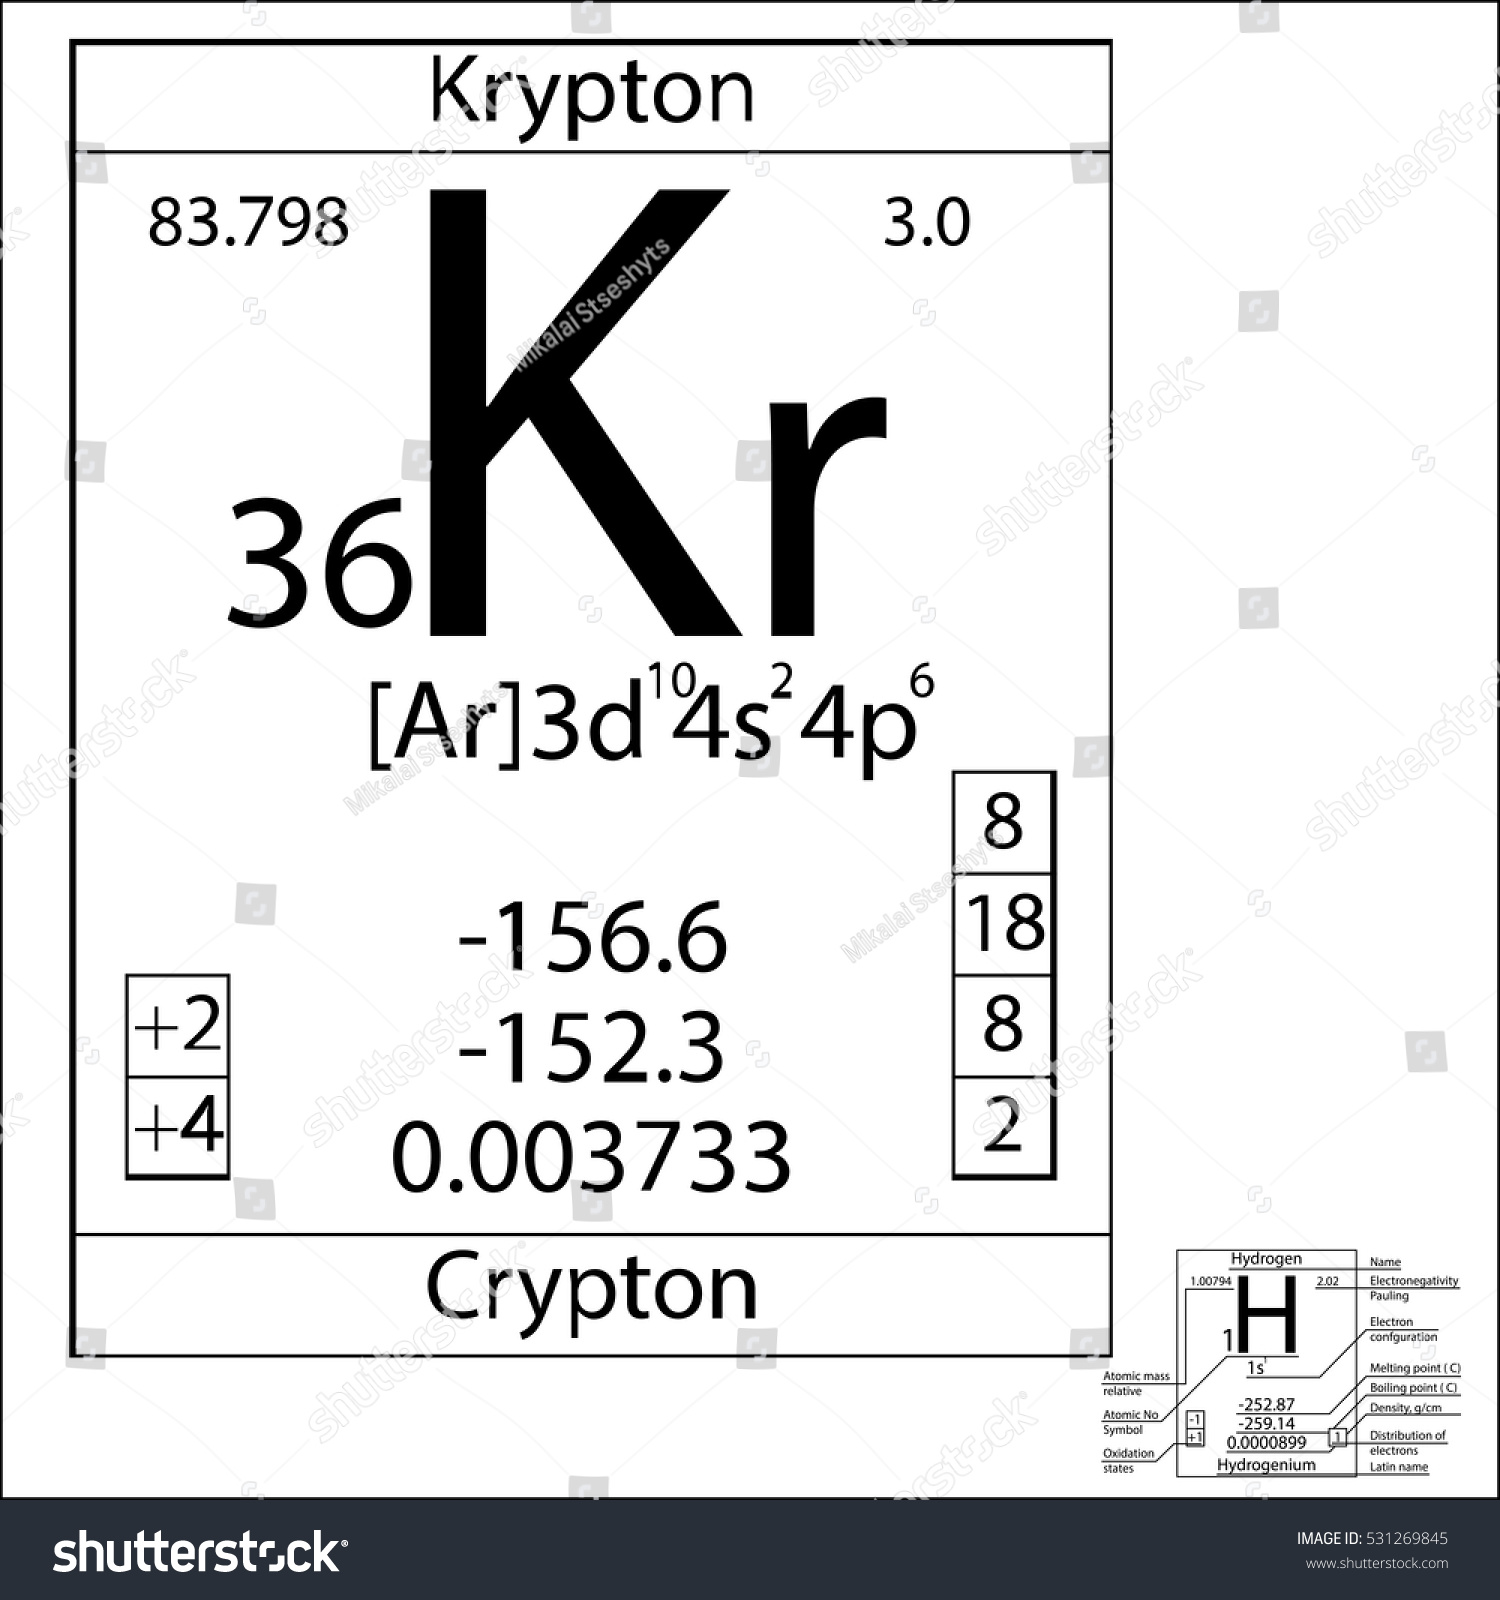 krypton essay Overnight it became a staple offering at newsstands across the country the son  of krypton quickly captured a large, dedicated following.